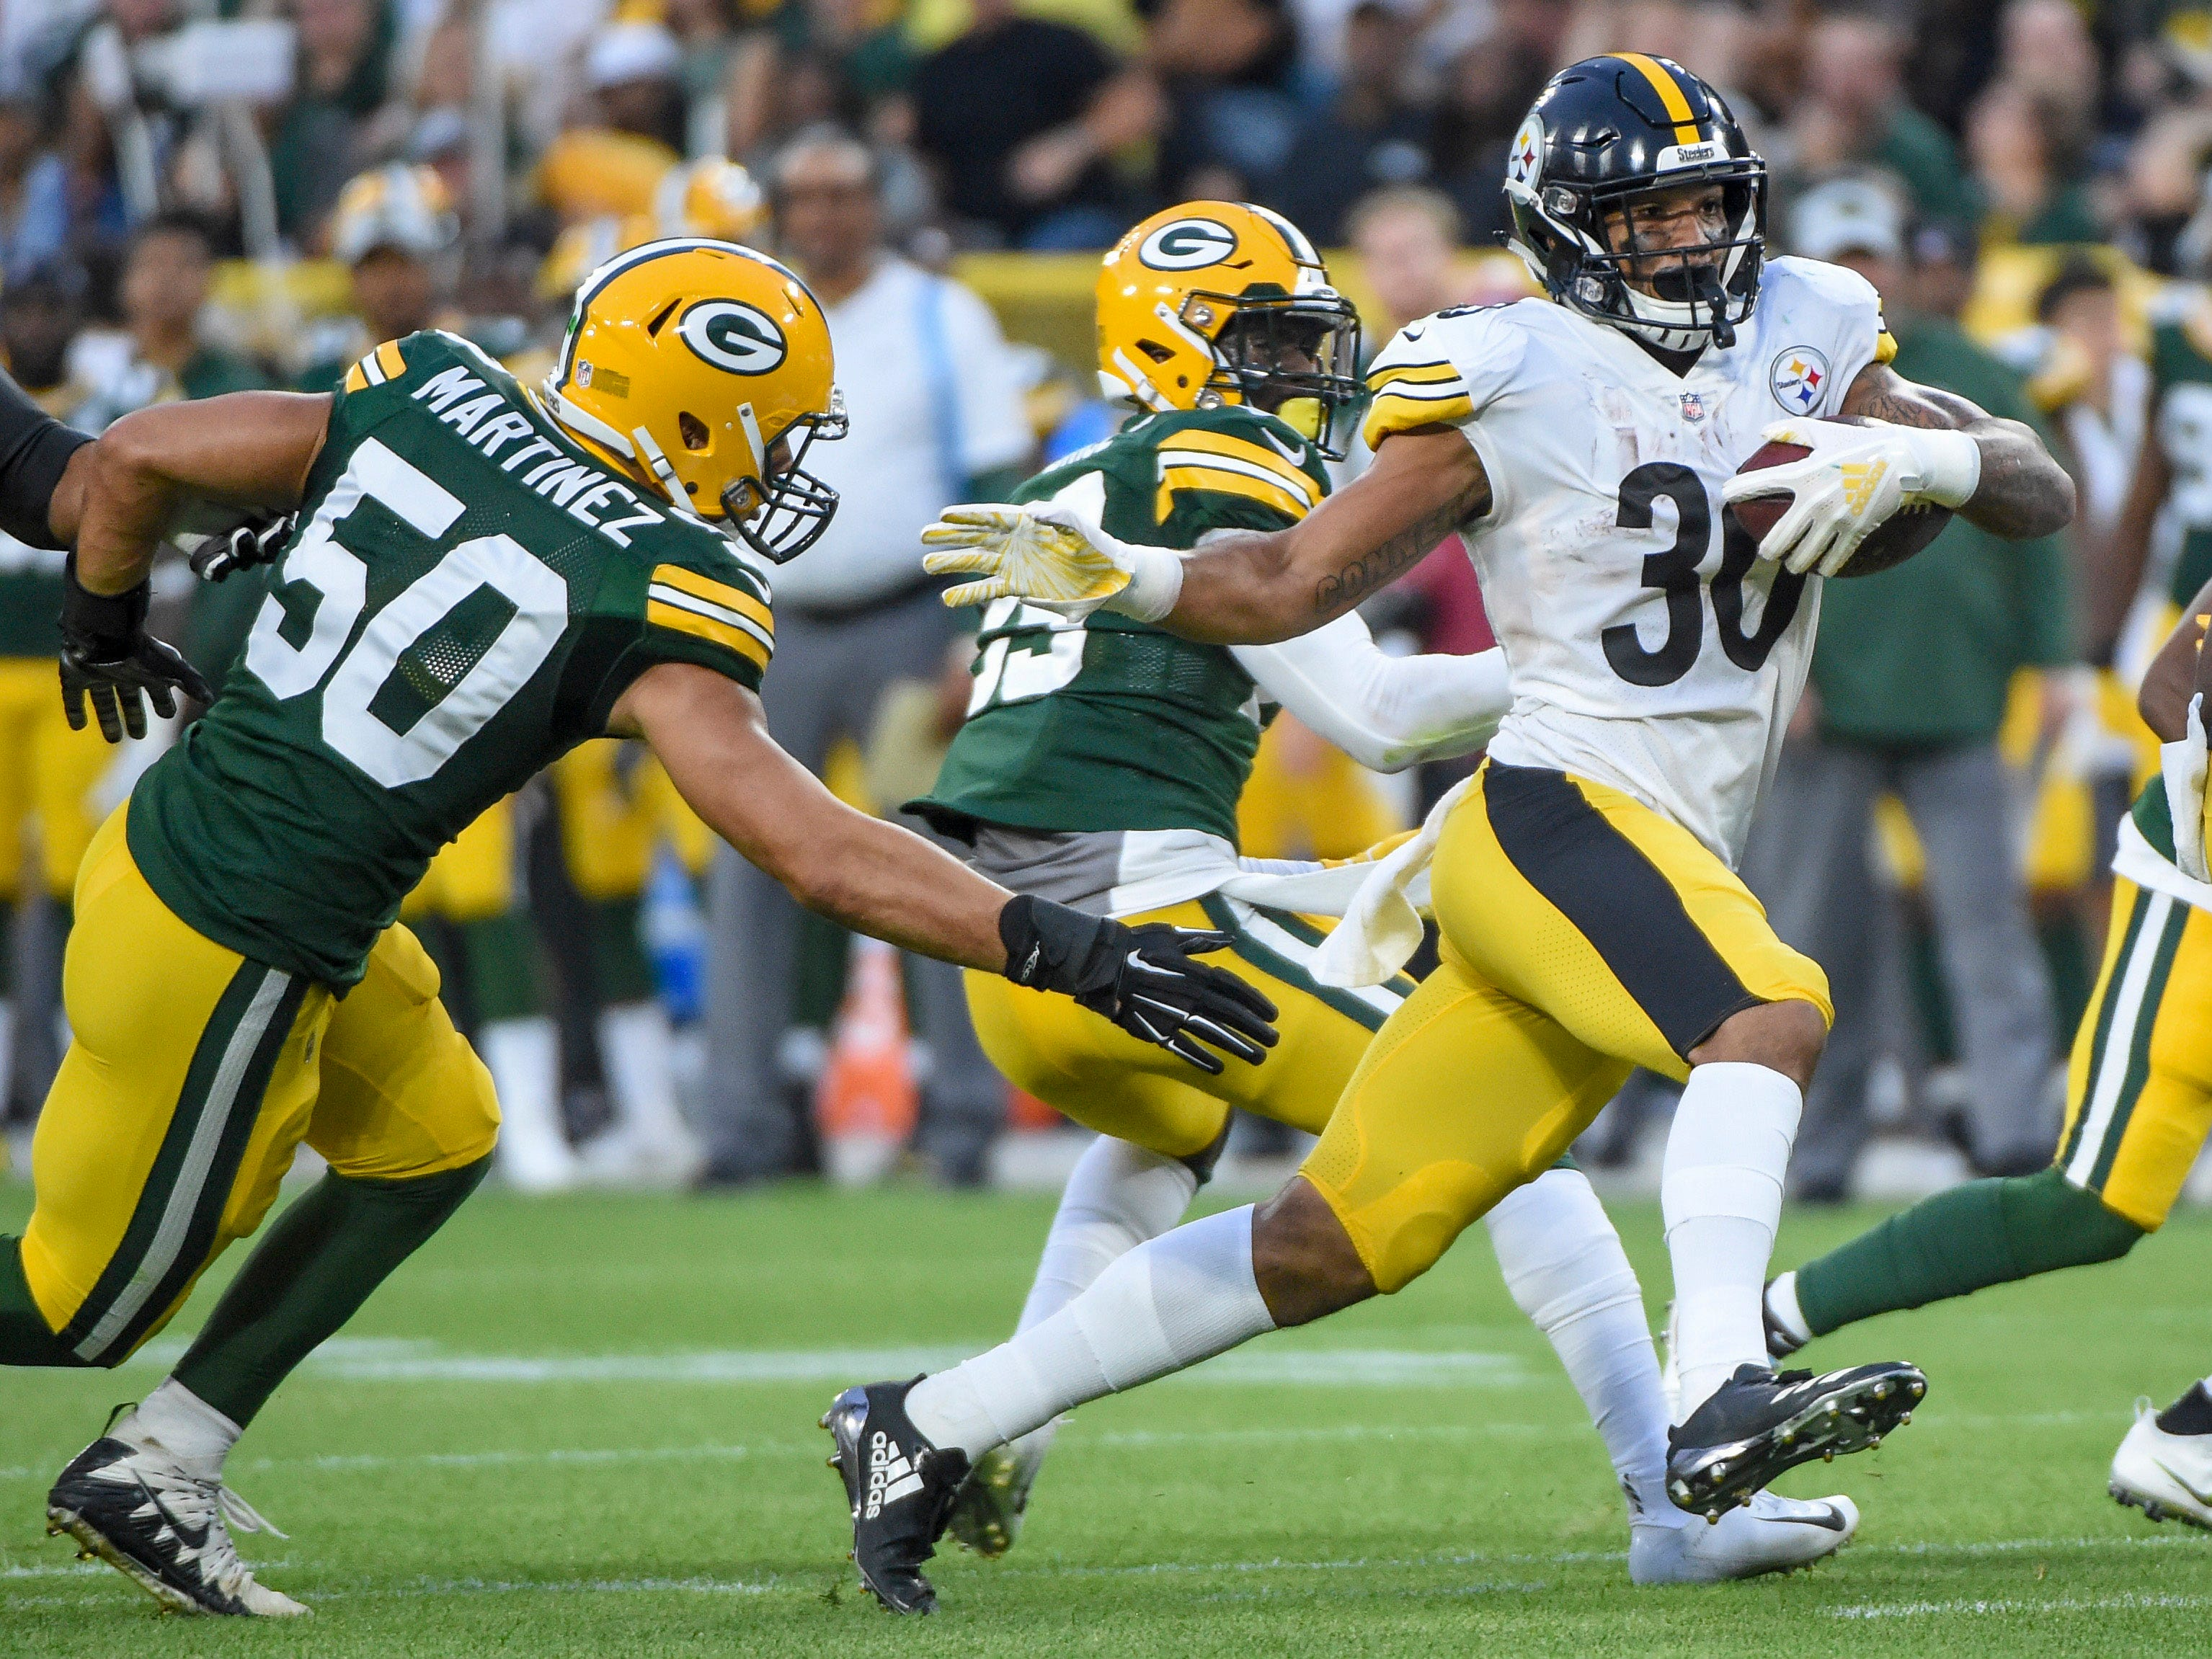 Pittsburgh Steelers running back James Conner gets past Green Bay Packers linebacker Blake Martinez to score a touchdown in the first quarter at Lambeau Field.